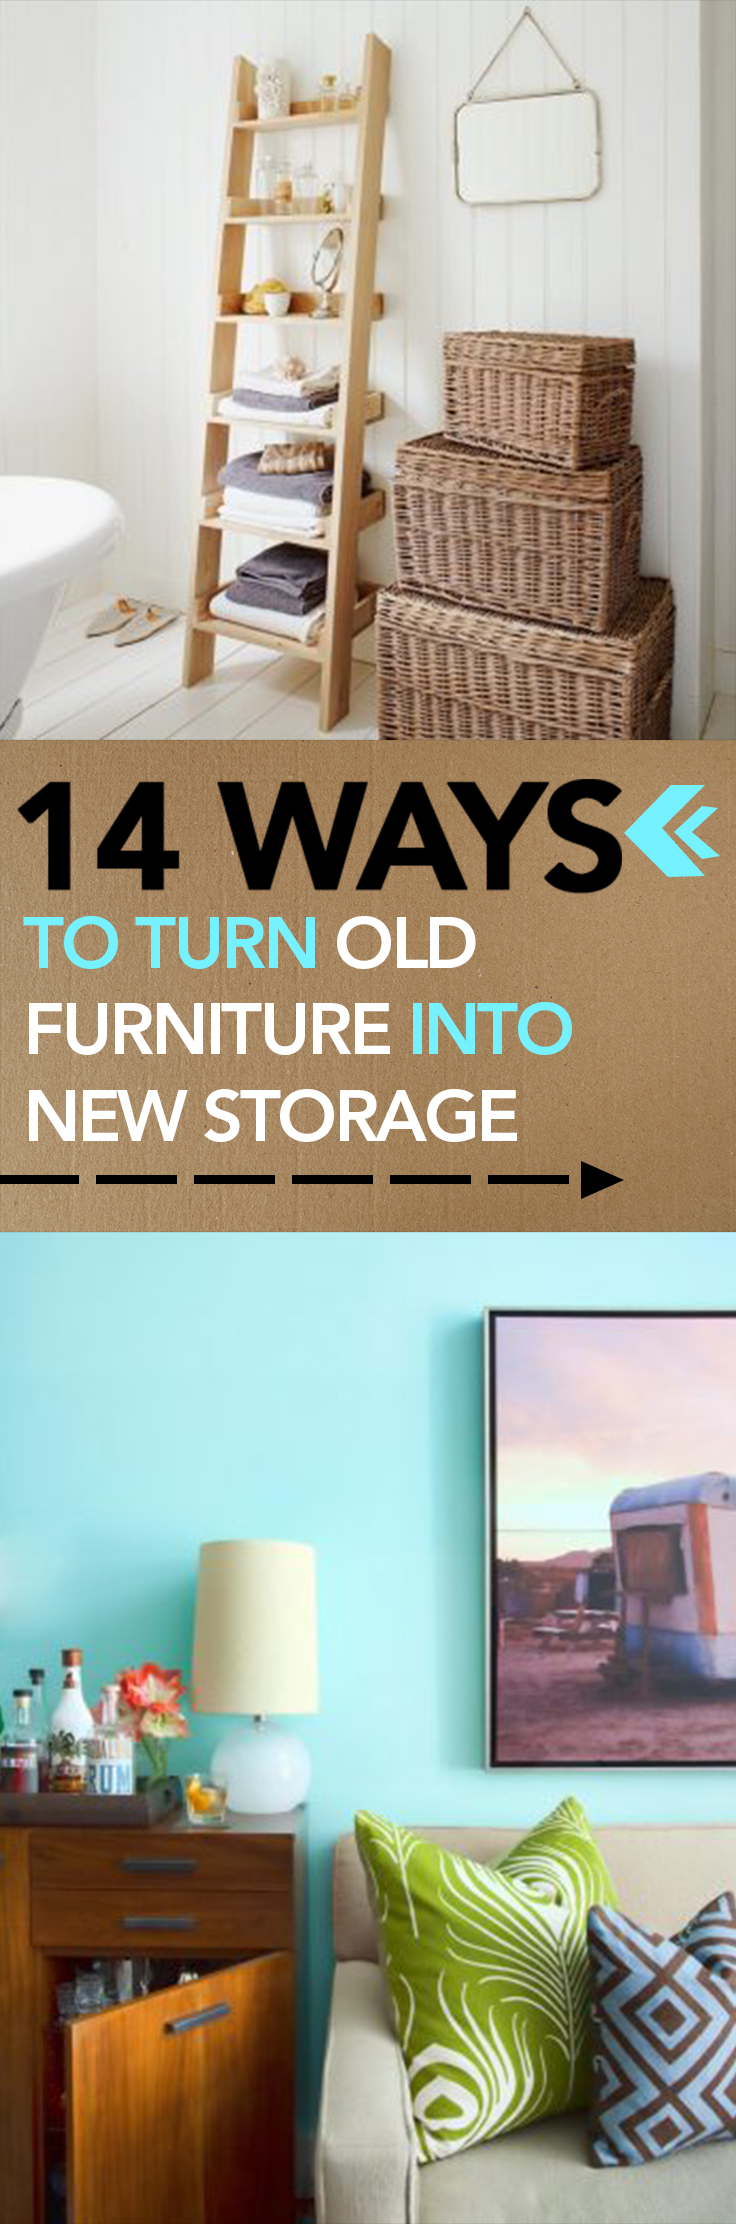 14 Ways to Turn Furniture into Storage